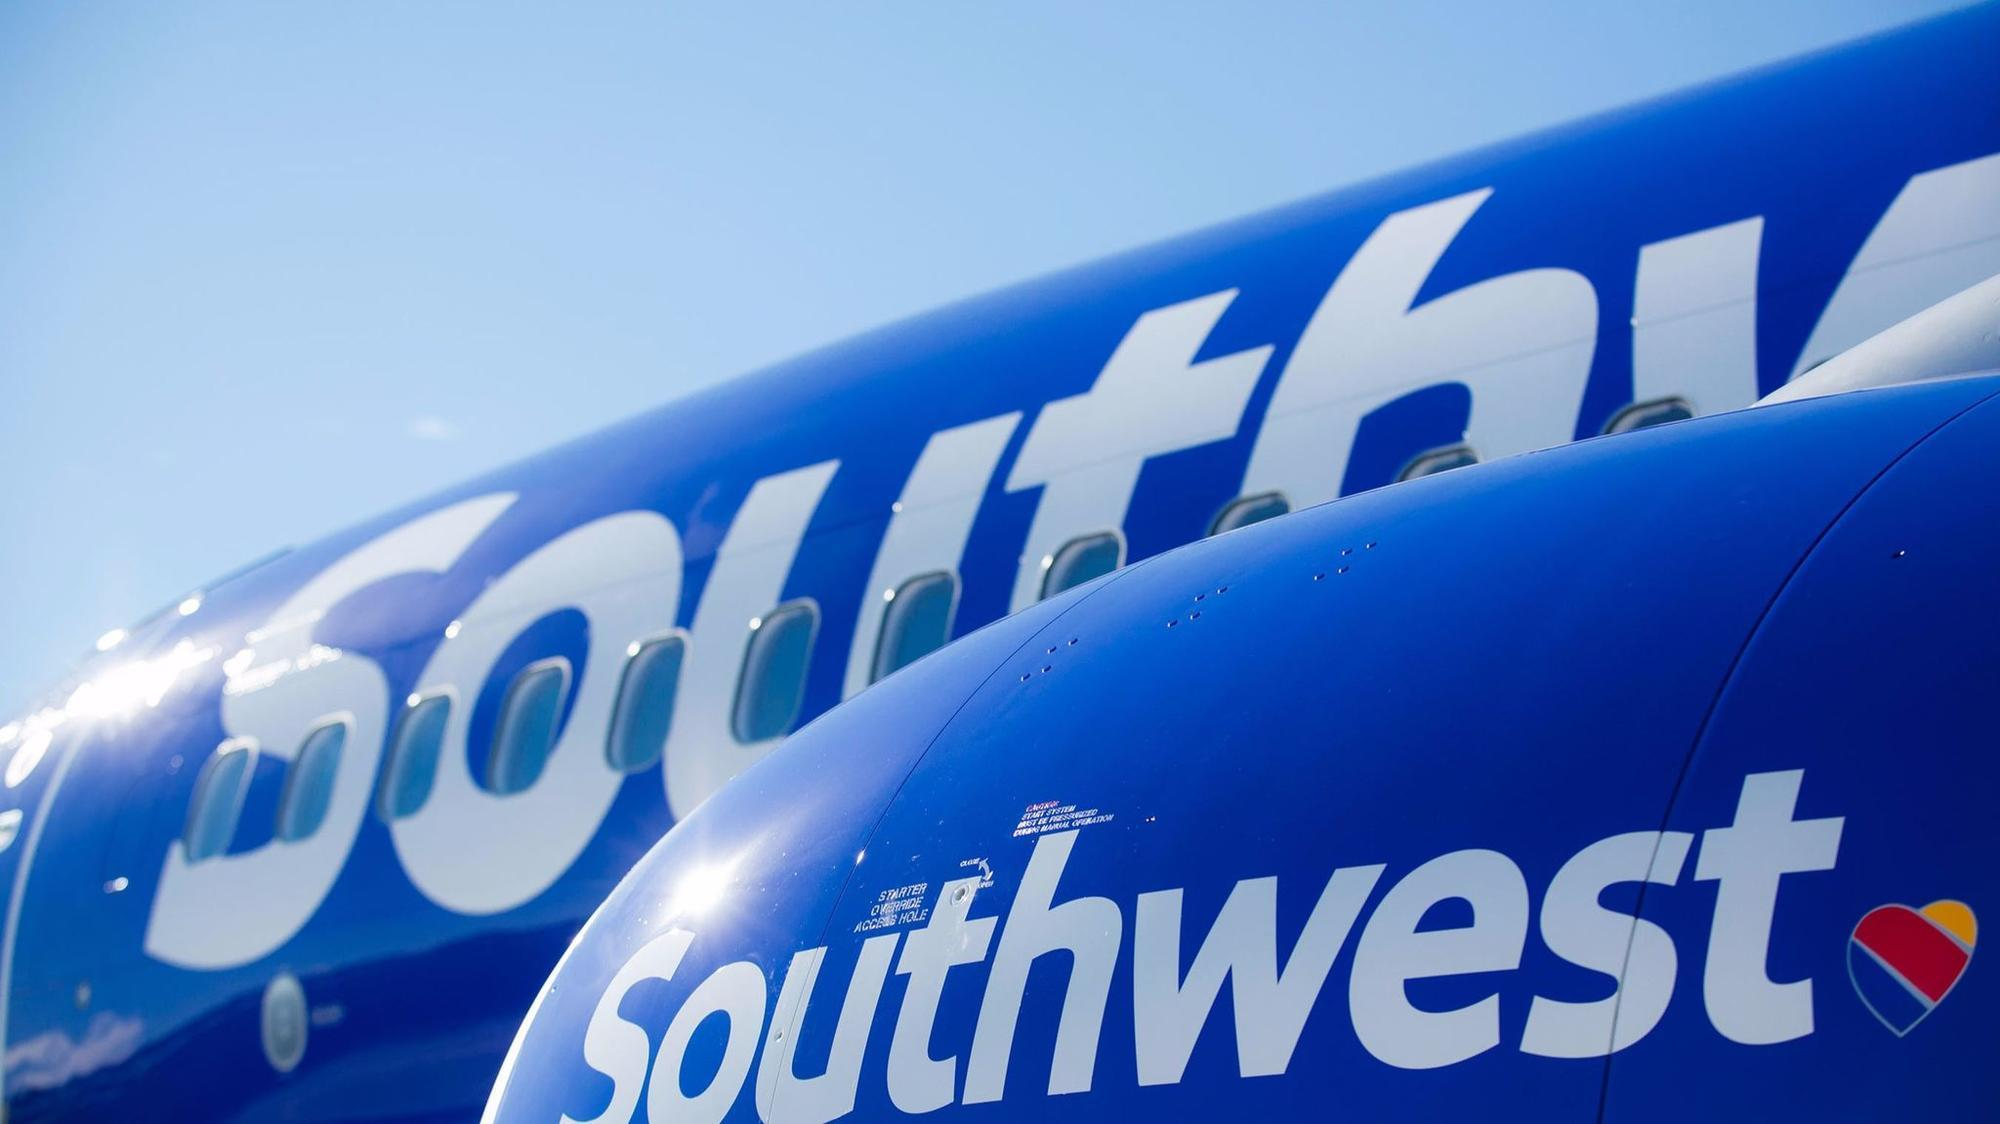 southwest airlines challenge to stay ahead Next generation competes in national economics challenge 6:50 am et mon, 21 may  what to buy ahead of next week's earnings  southwest airlines ceo:.